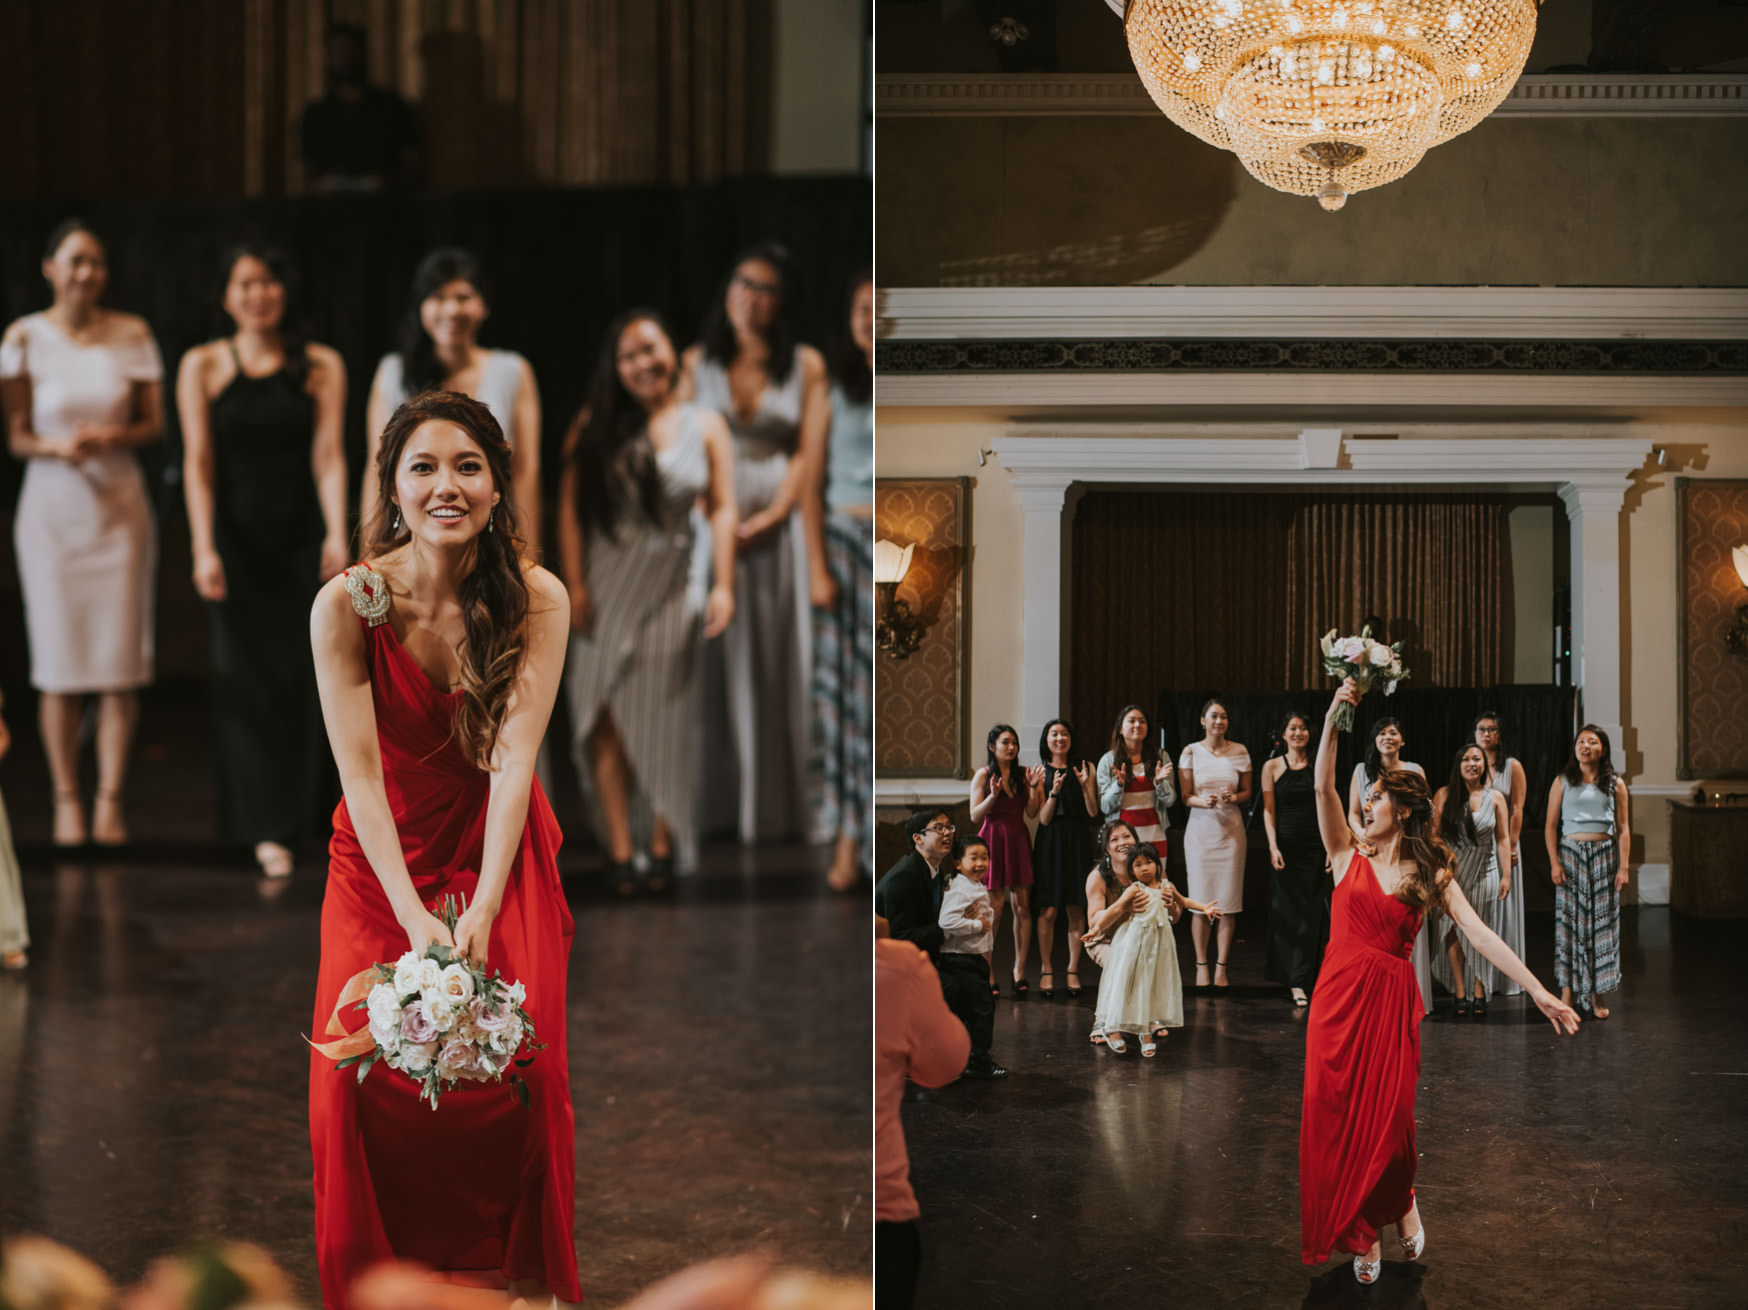 Liberty Grand Wedding renaissance room reception bouquet toss